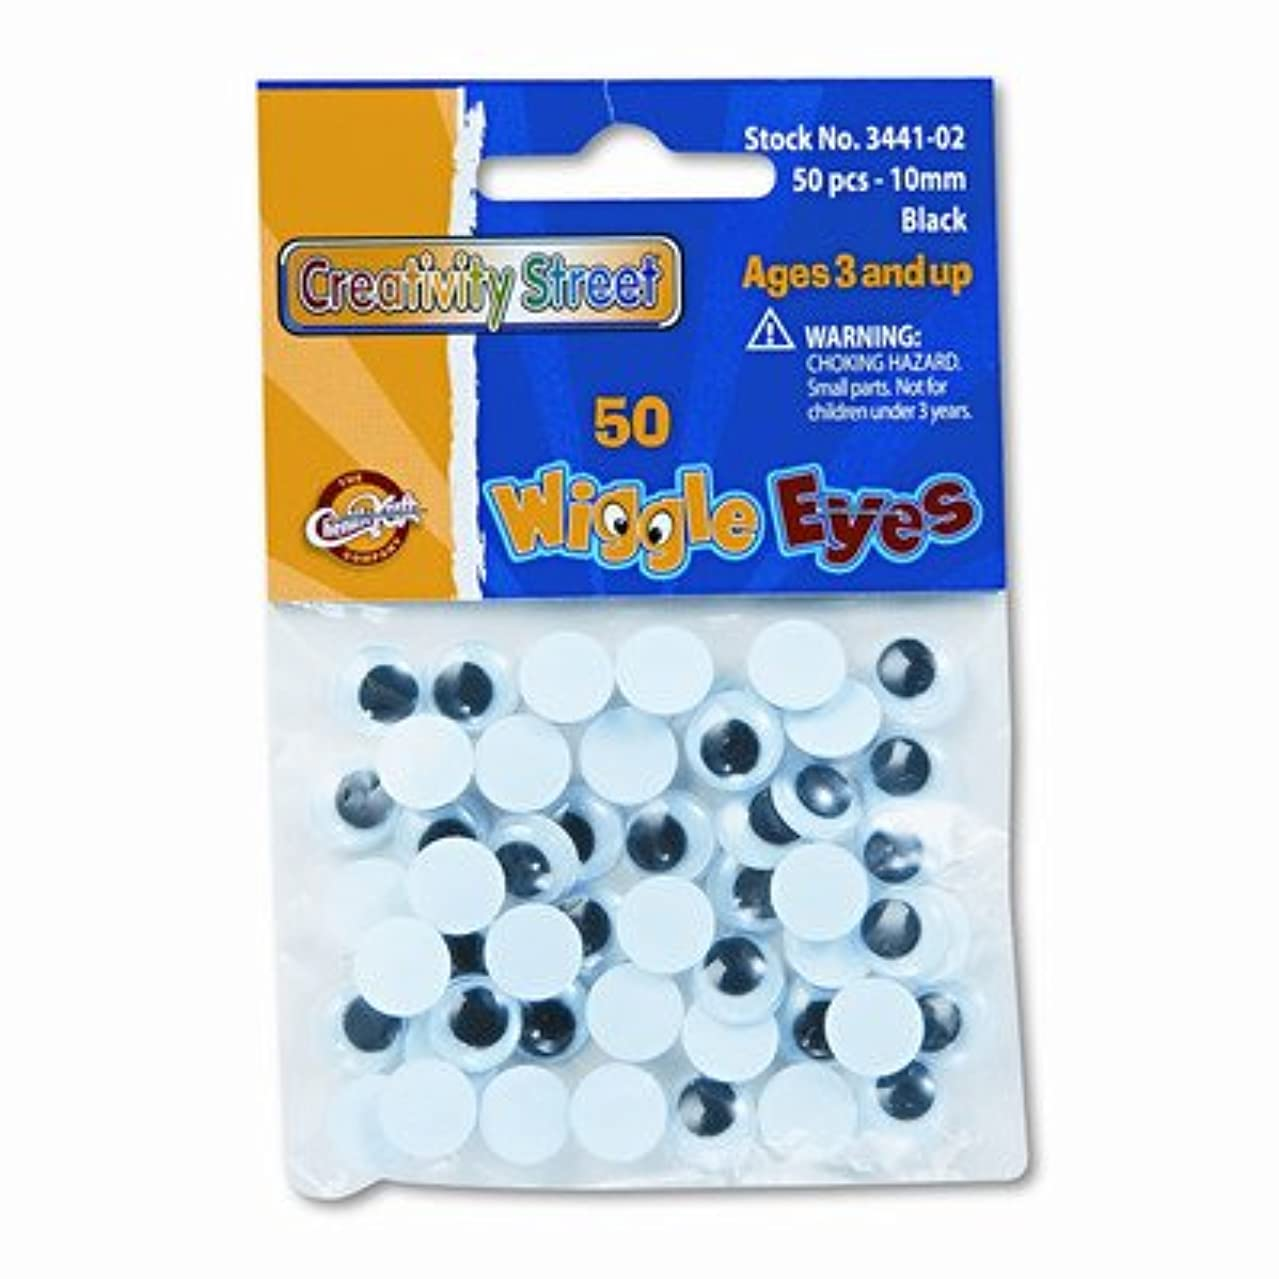 Round Black Wiggle Eyes, 10mm, 50 Pieces per Pack [Set of 4]